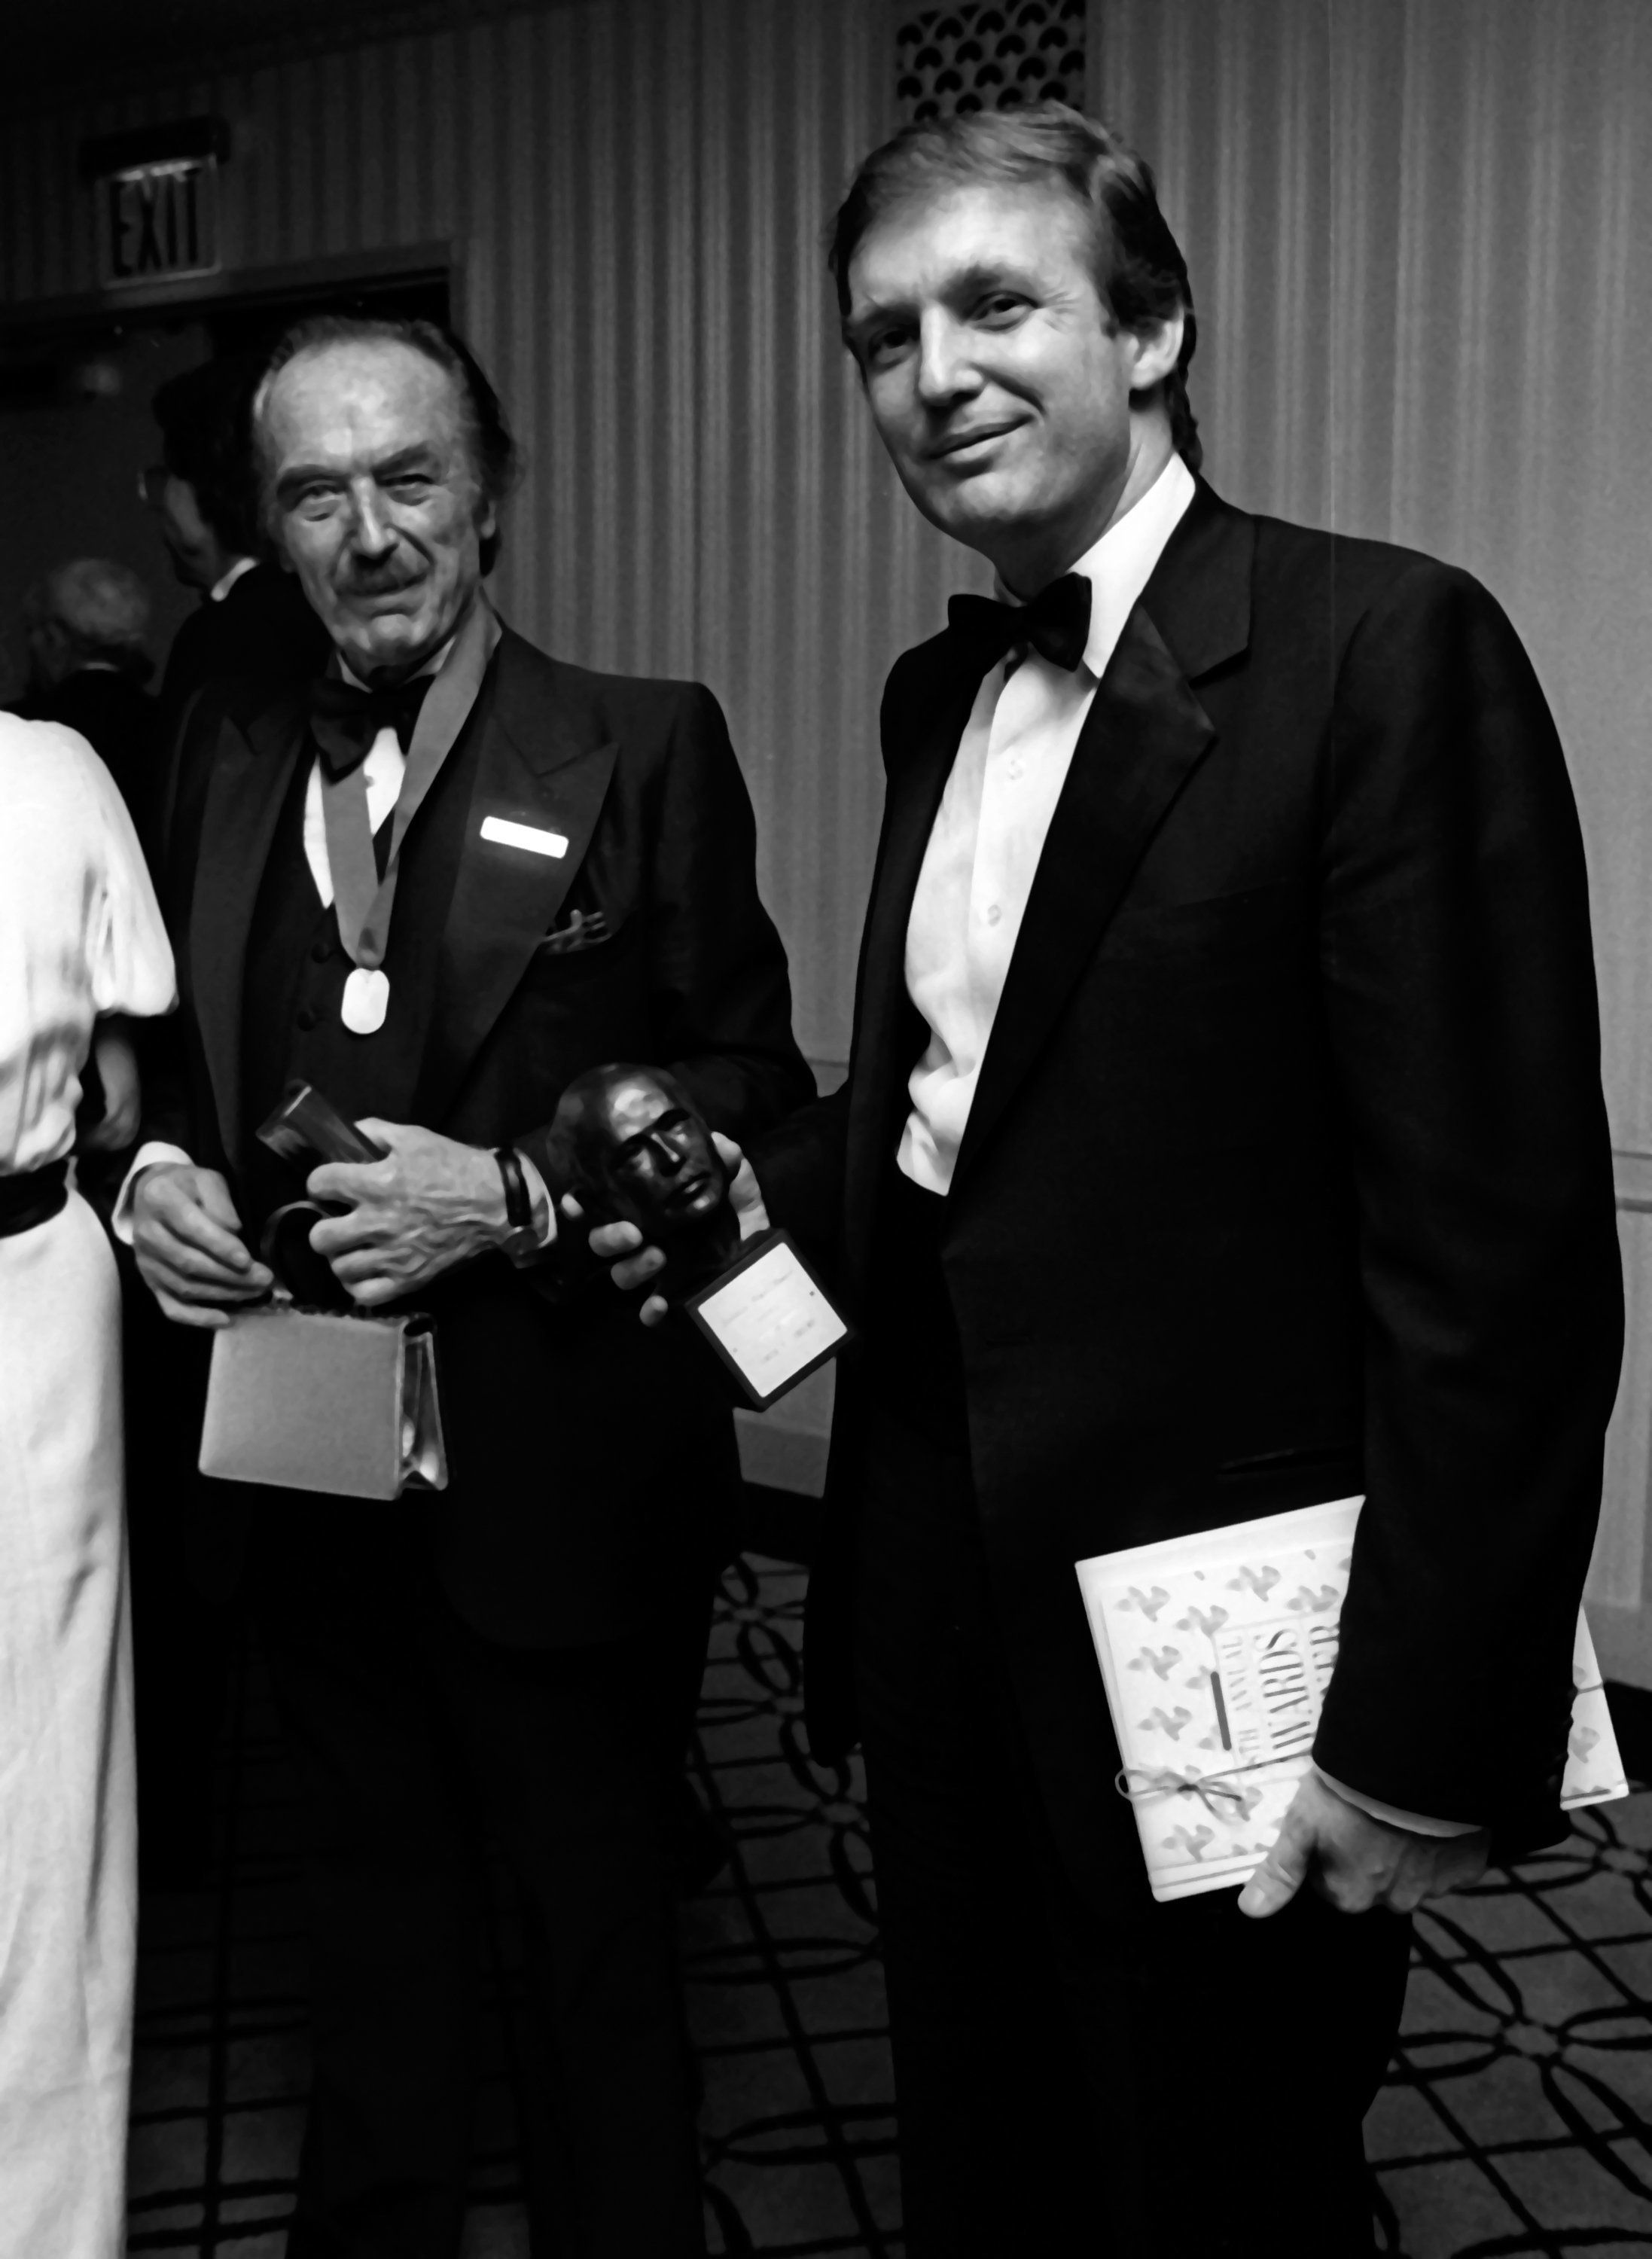 NEW YORK CITY - MAY 10:  Donald Trump and Fred Trump attend 38th Annual Horatio Alger Awards Dinner on May 10, 1985 at the Waldorf Hotel in New York City. (Photo by Ron Galella/WireImage)